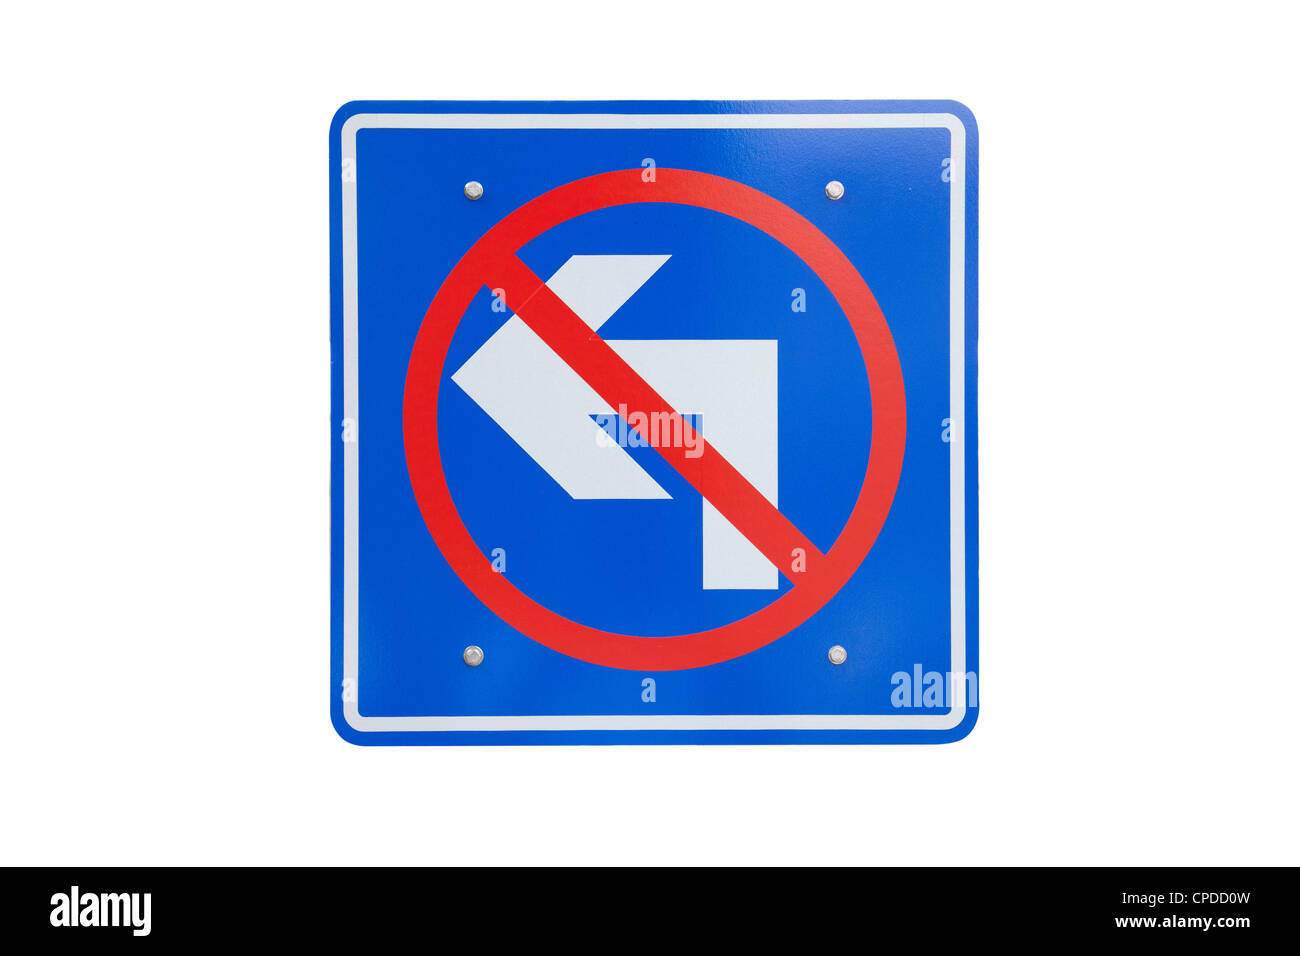 Road sign don't turn left isolated - Stock Image